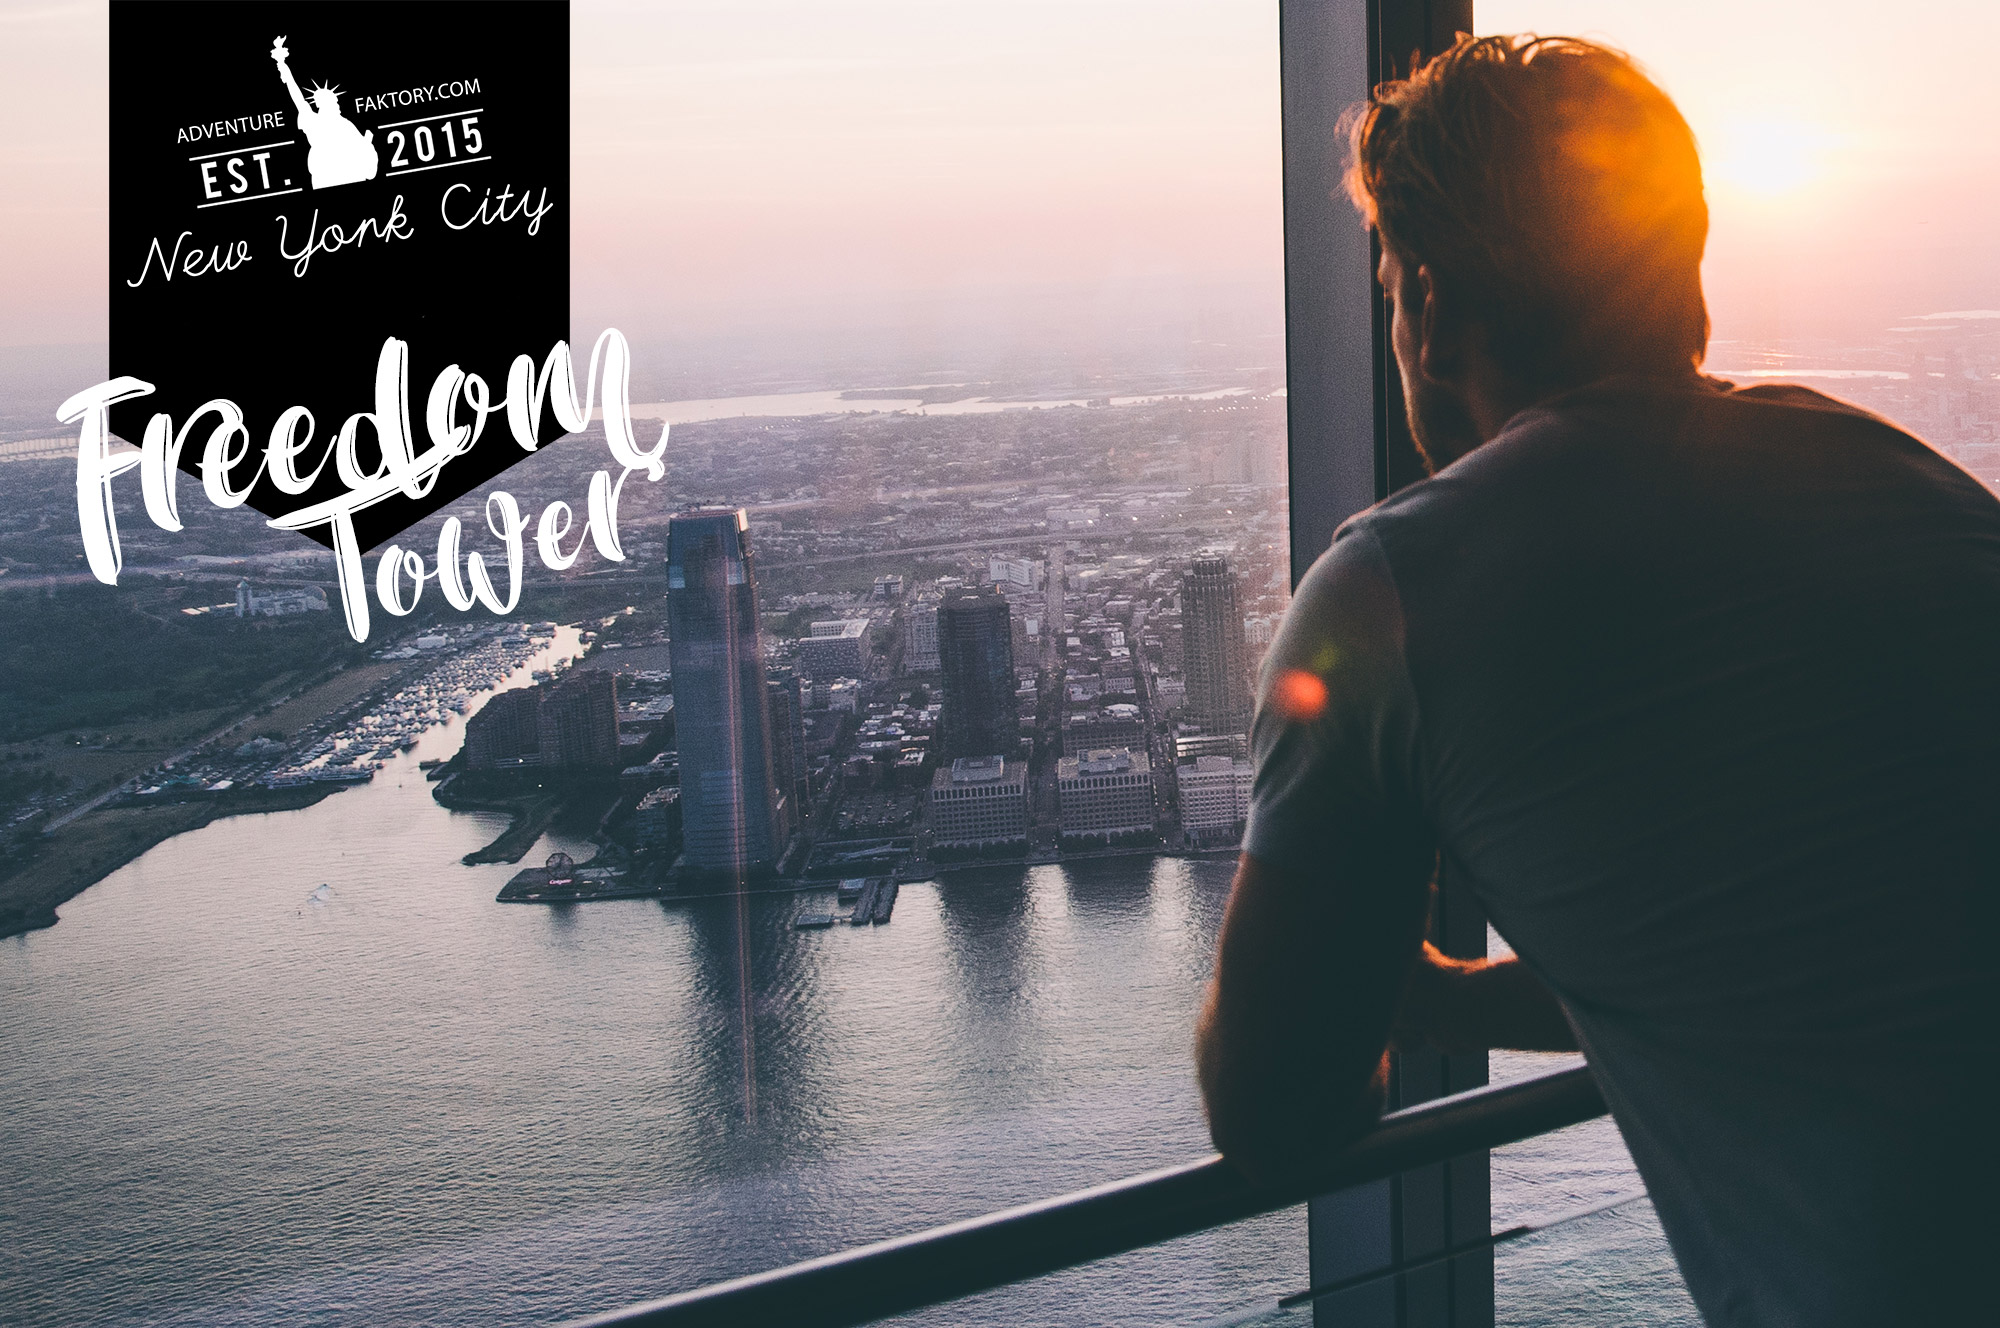 Adventure Faktory at the Freedom Tower in New York City